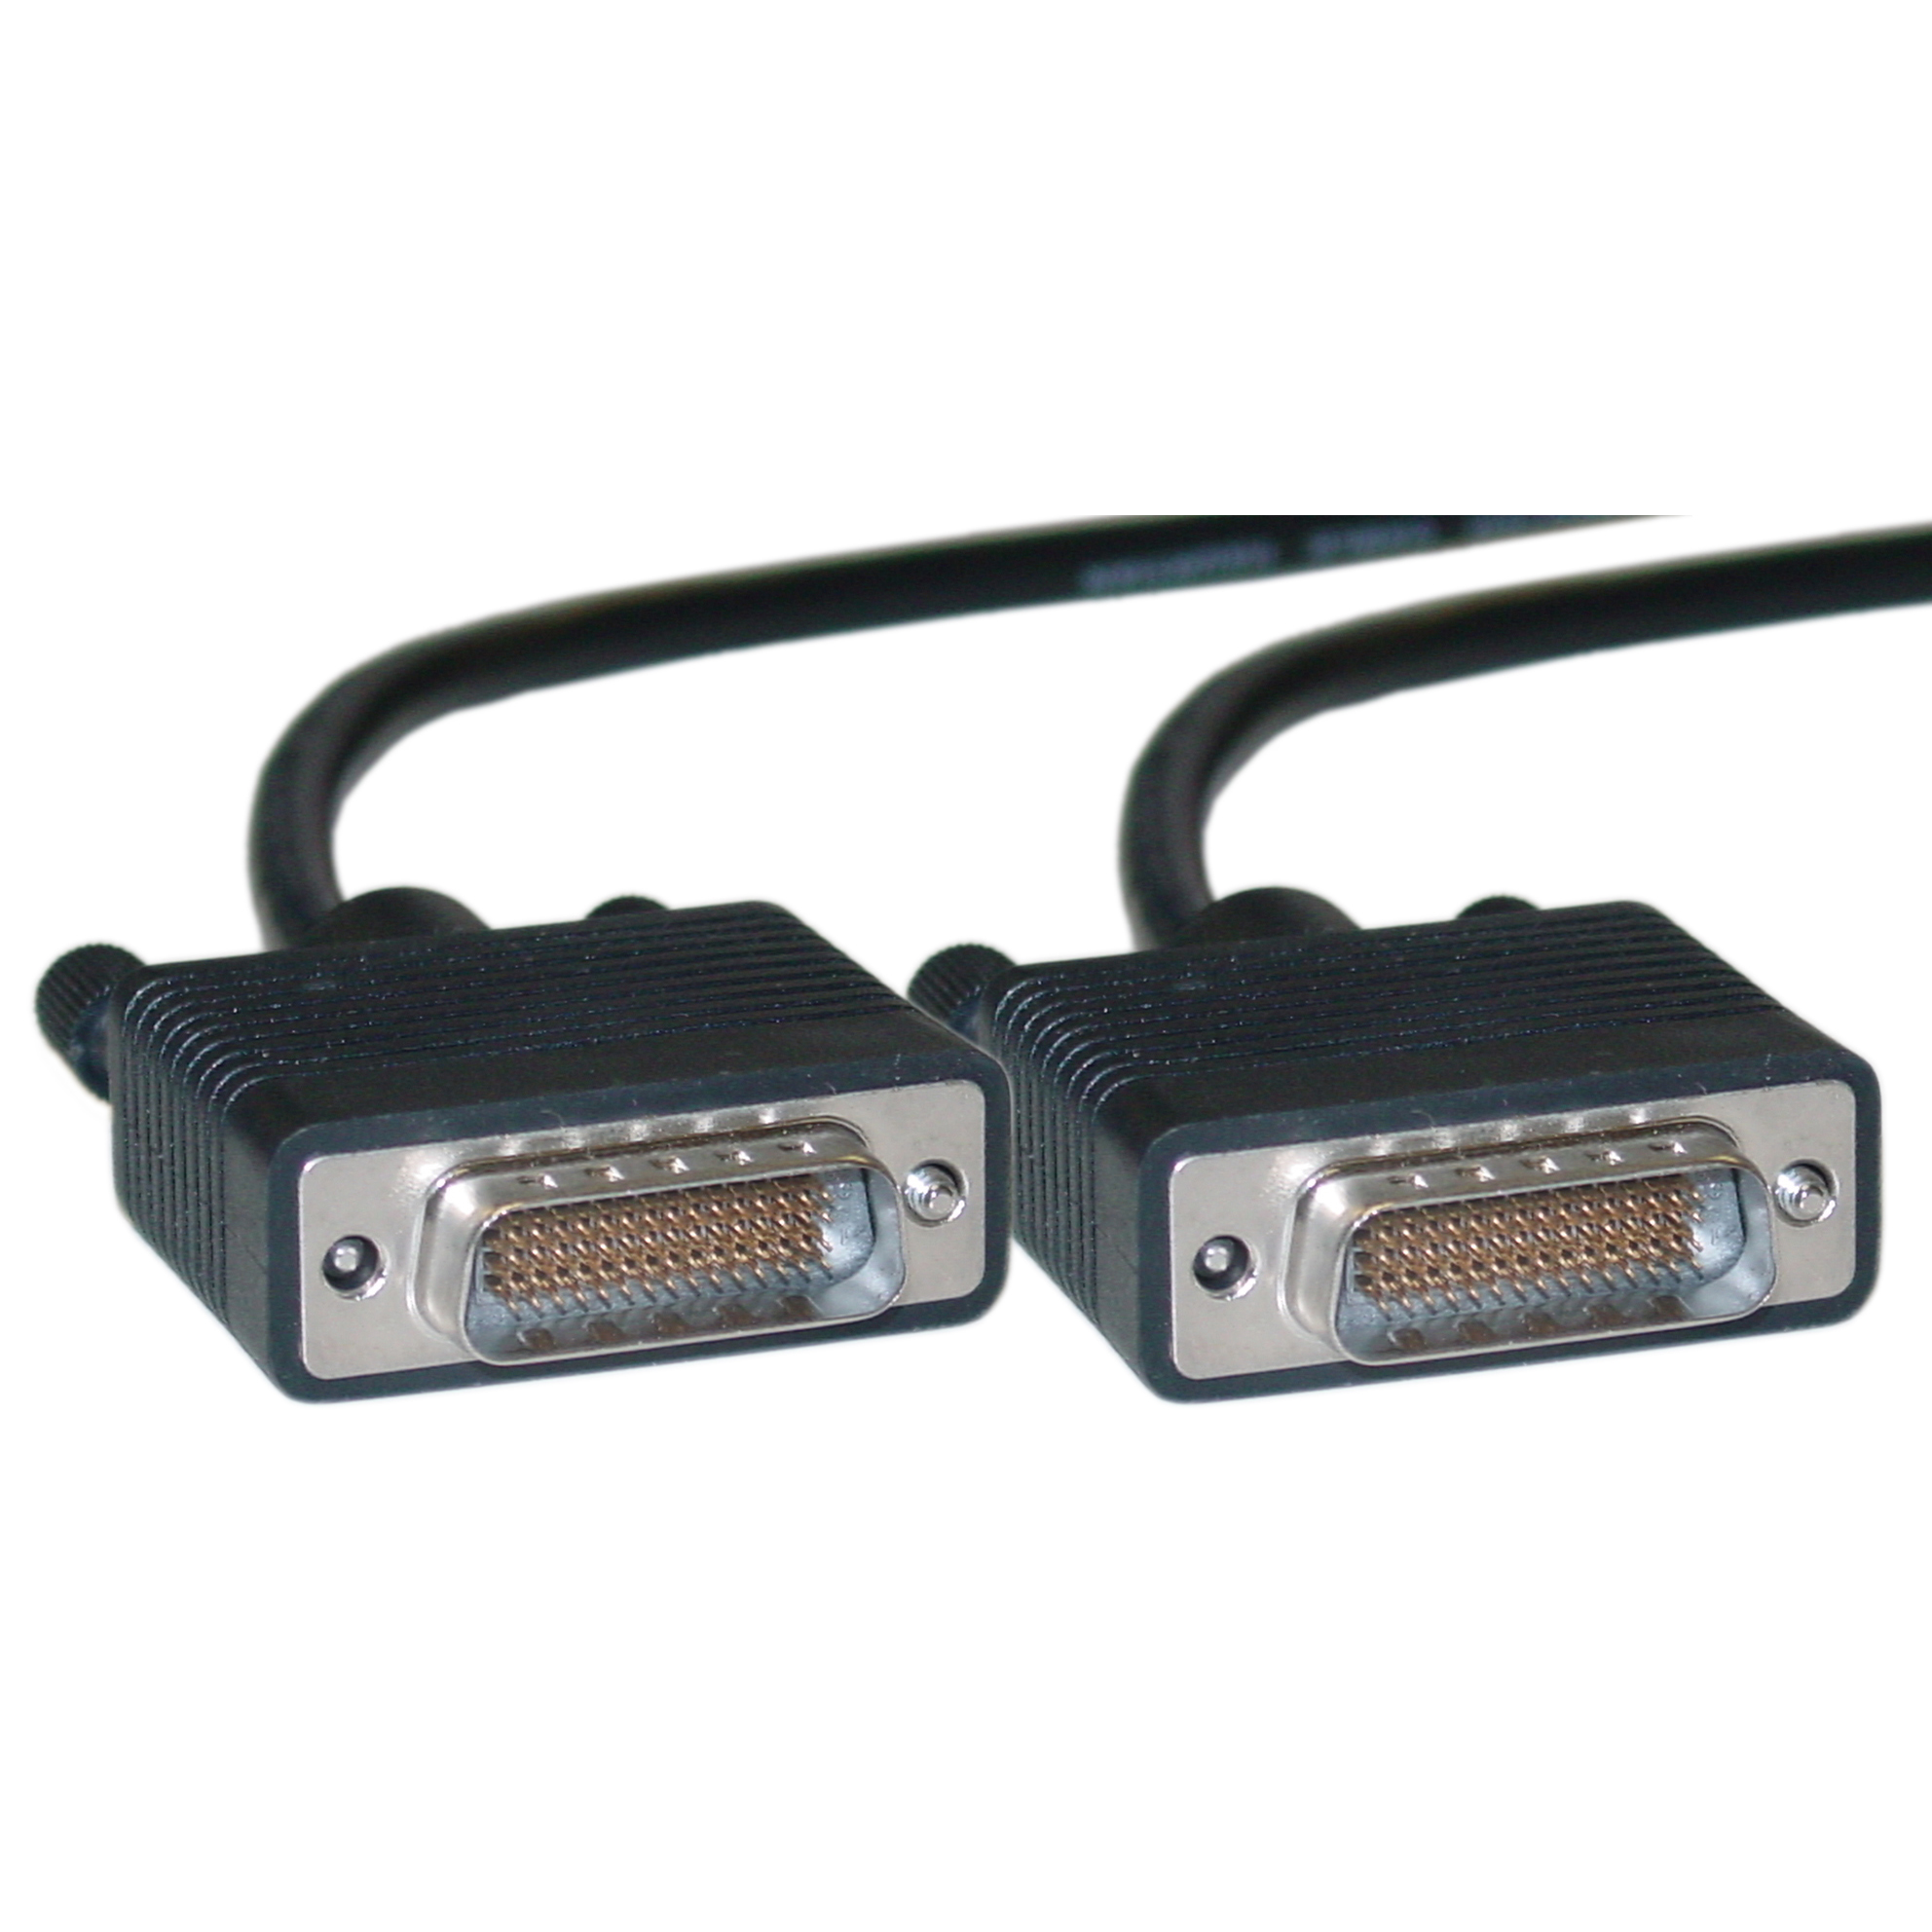 6ft Hd60 Male Hd60 Male Dte Dce Cisco Cable